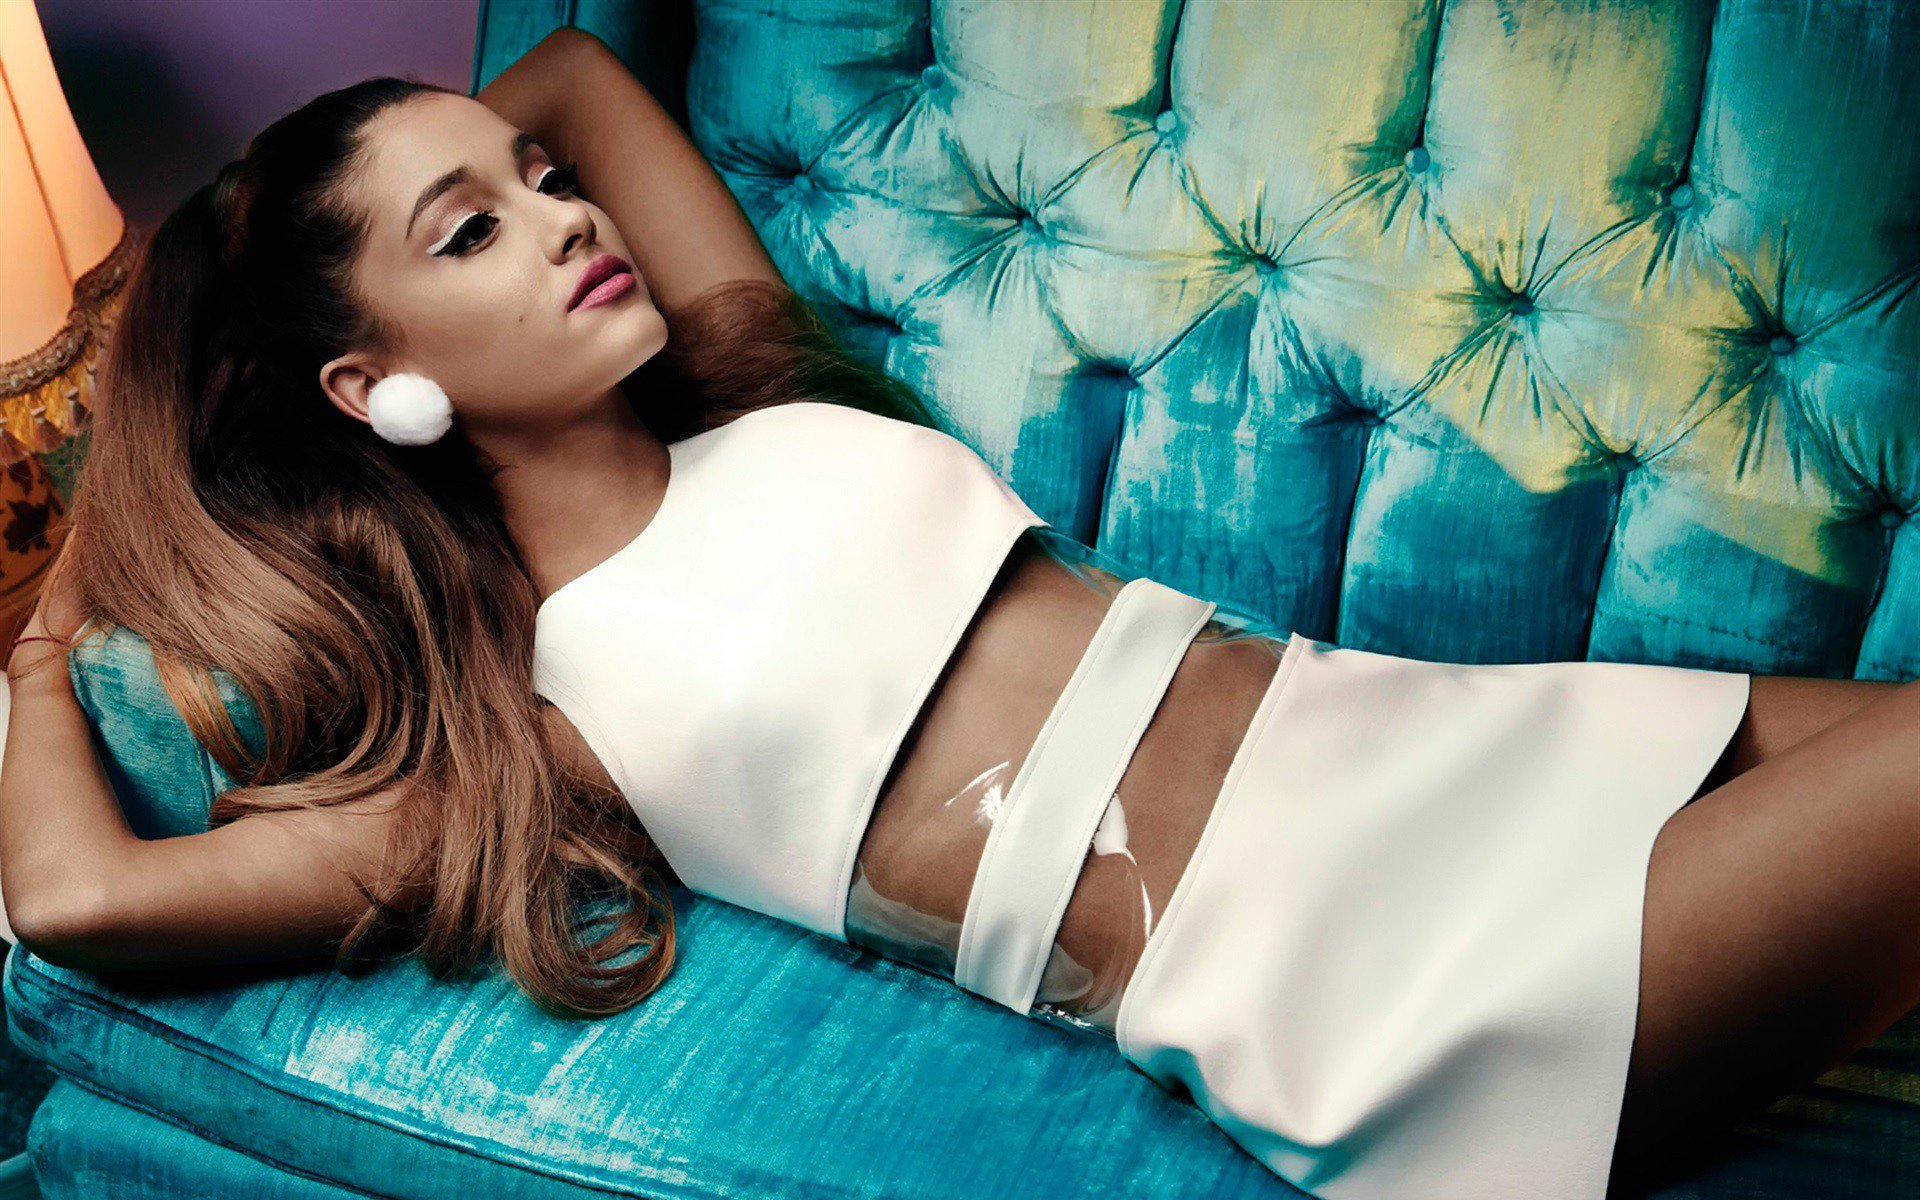 Beautiful 3d Wallpaper For Android Ariana Grande Song Hd Celebrities 4k Wallpapers Images